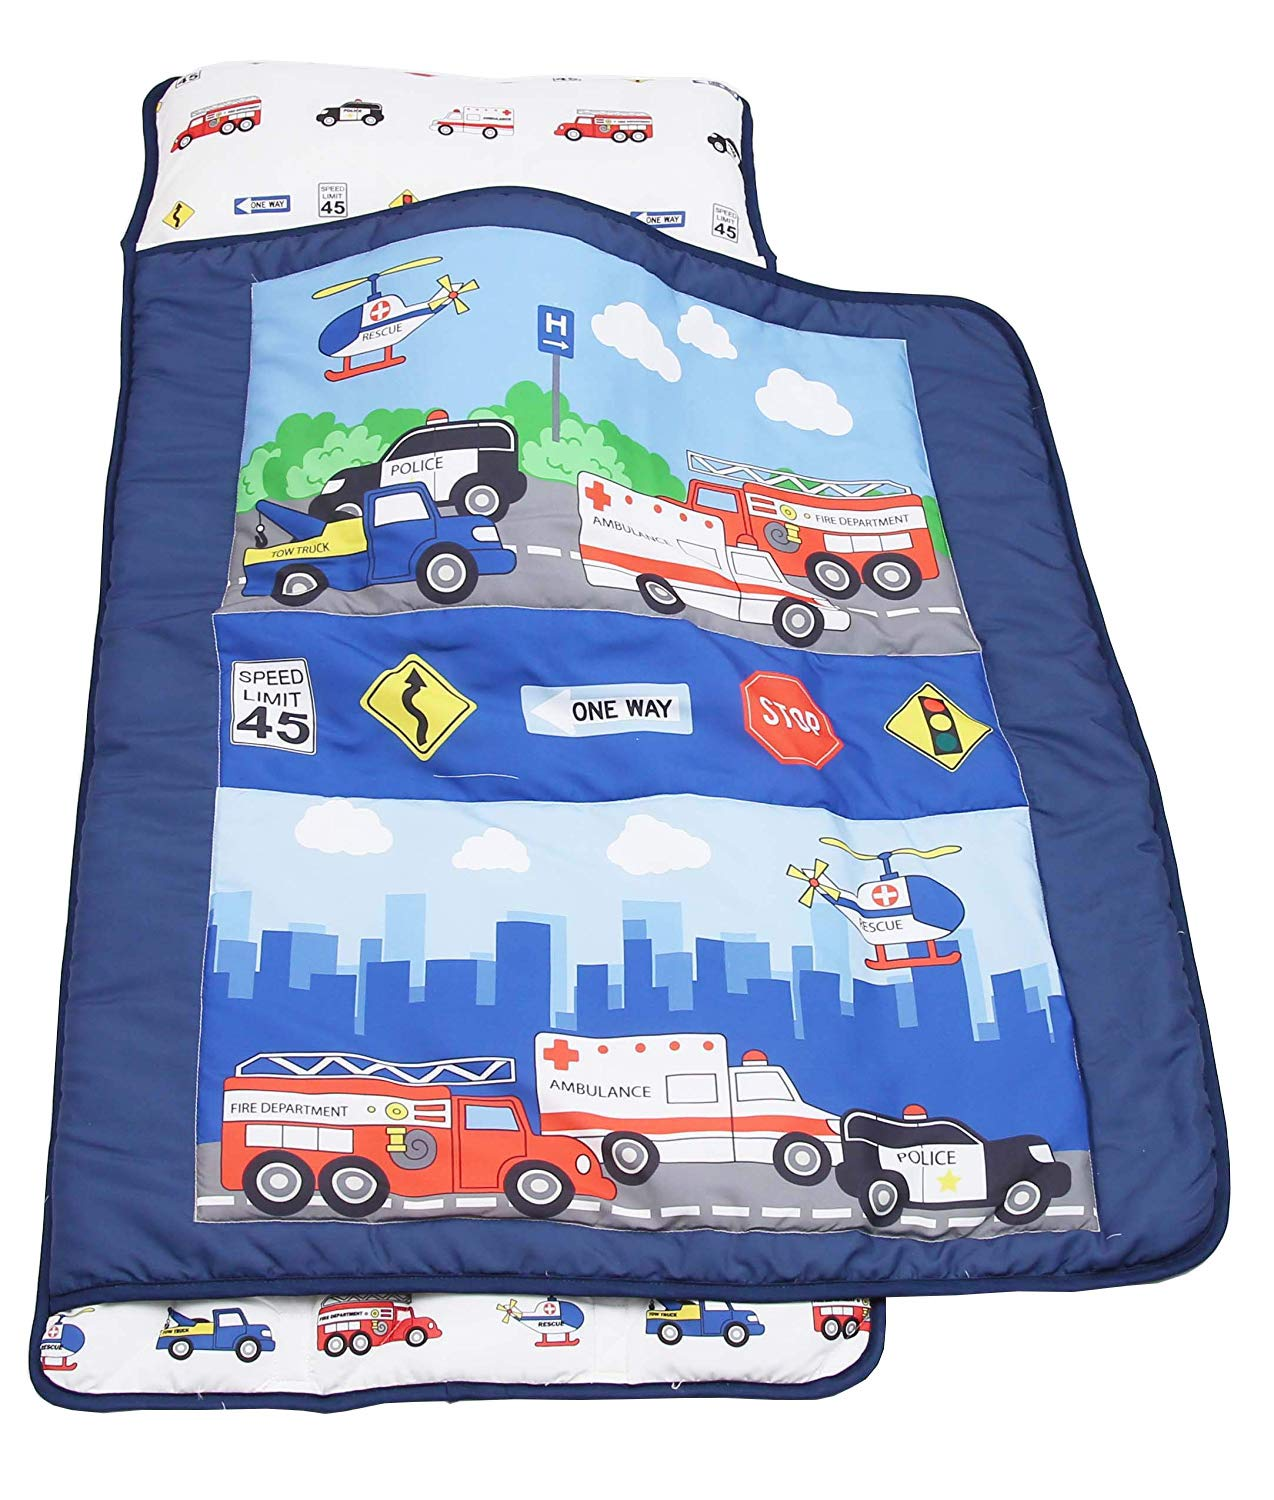 Everyday Kids Toddler Nap Mat with Removable Pillow -Fire Police Rescue- Carry Handle with Velcro Strap Closure, Rollup Design, Soft Microfiber for Preschool, Daycare, Kindergarten Sleeping Bag